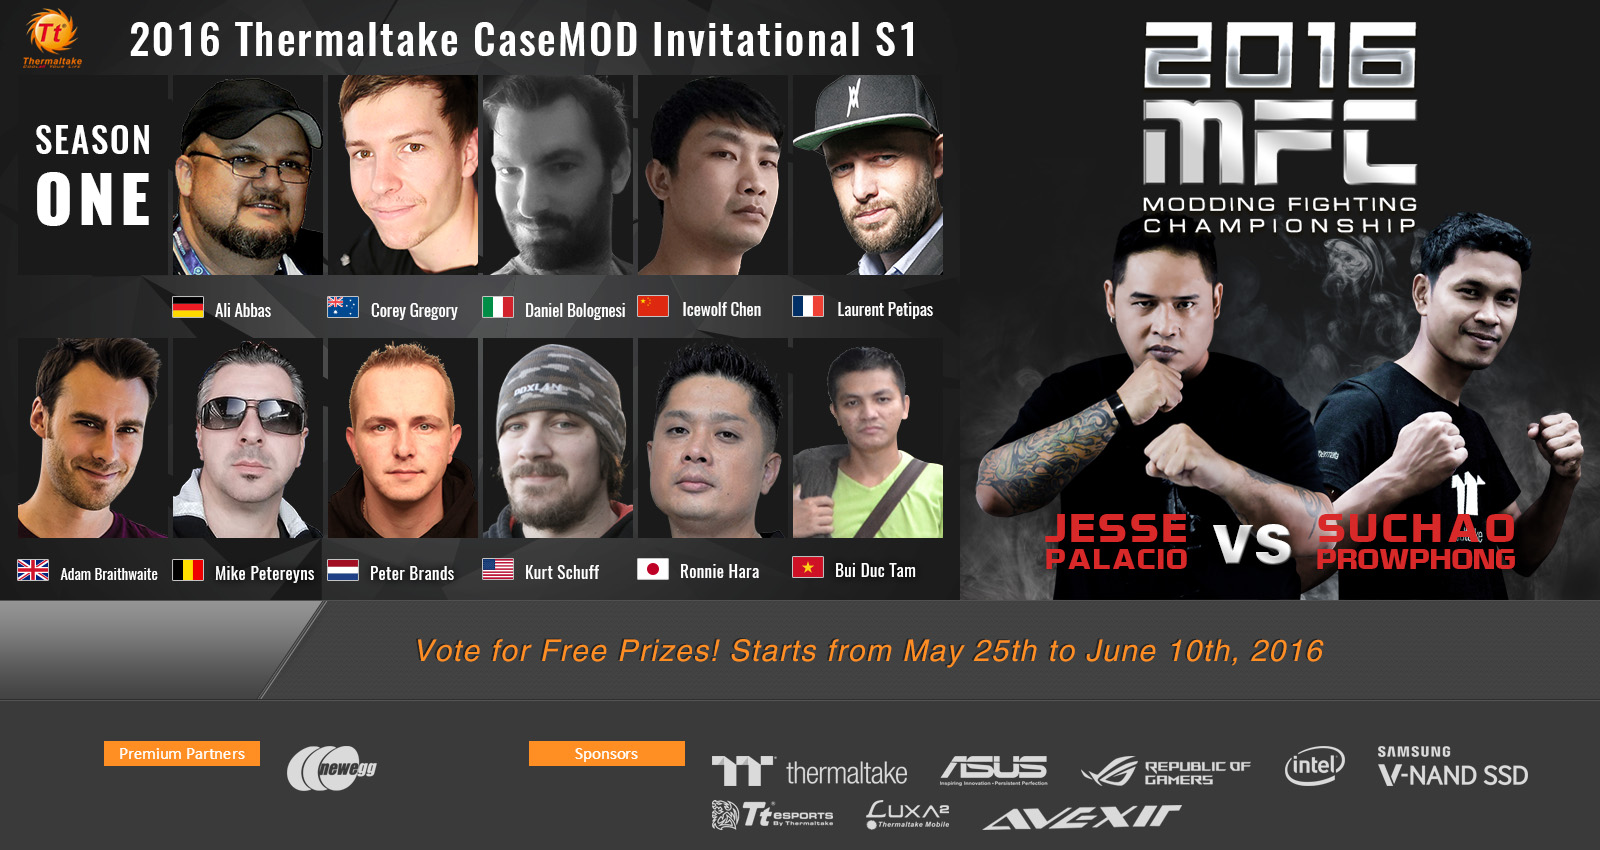 2016 Thermaltake CaseMOD Invitational Season 1 Voting Event Now Live!